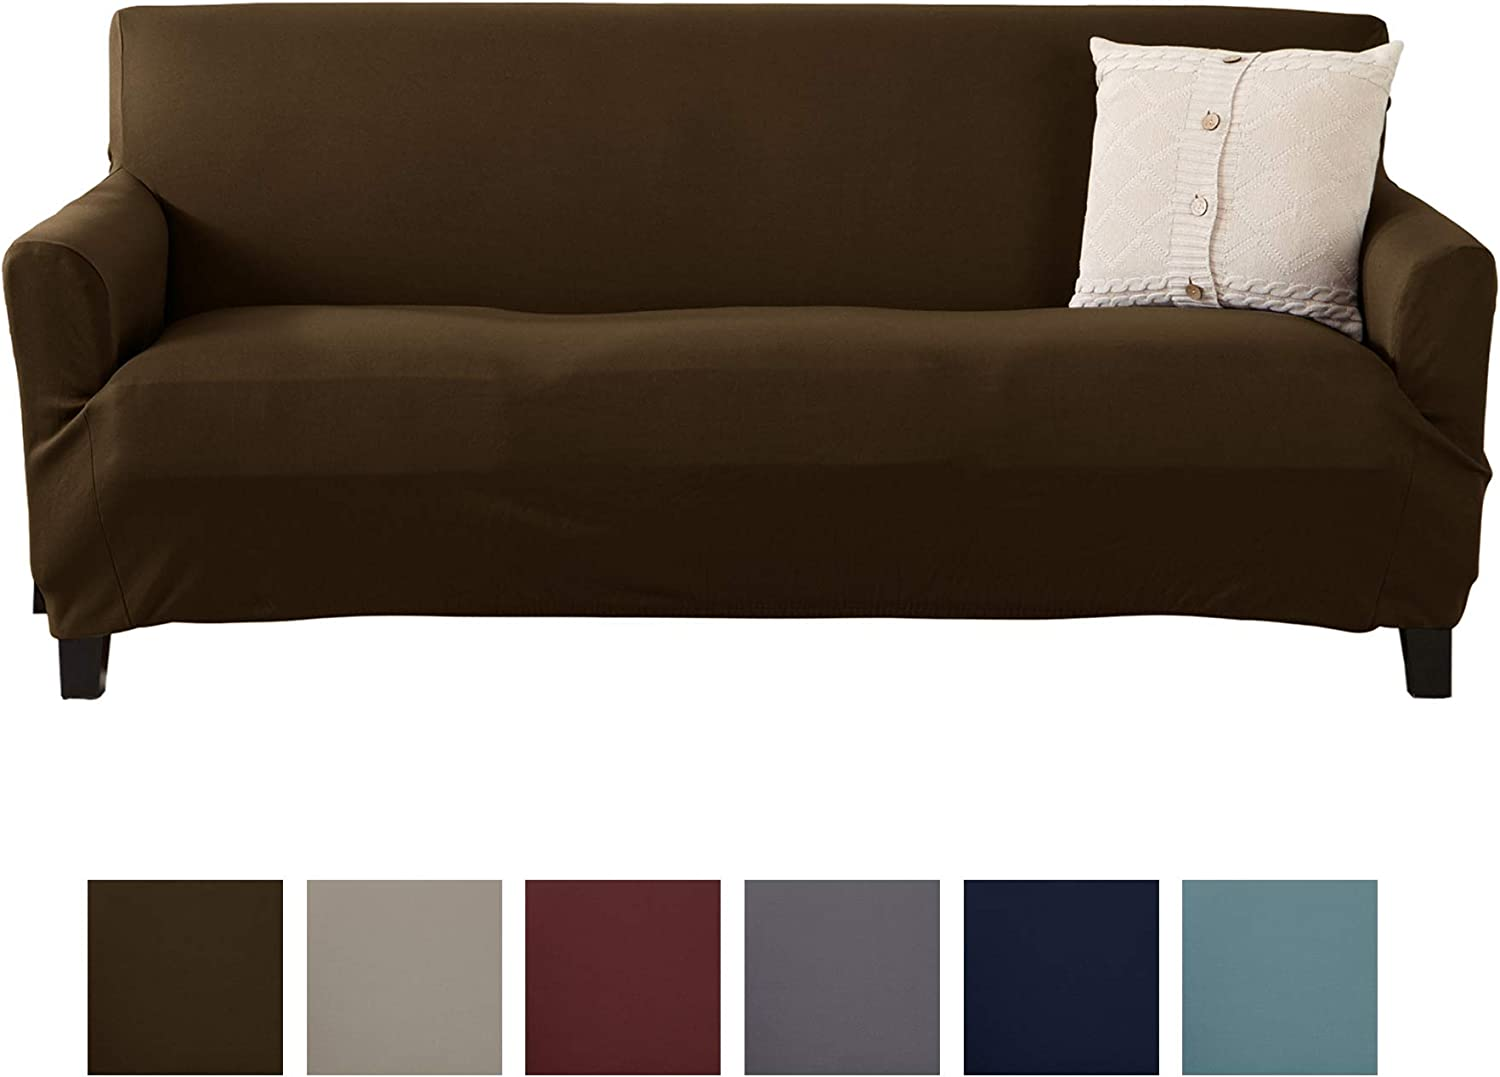 Amazon Com Home Fashion Designs Solid Twill Sofa Slipcover One Piece Stretch Couch Cover Strapless Arm Sofa Cover For Living Room Brenna Collection Slipcover Sofa Chocolate Solid Home Kitchen